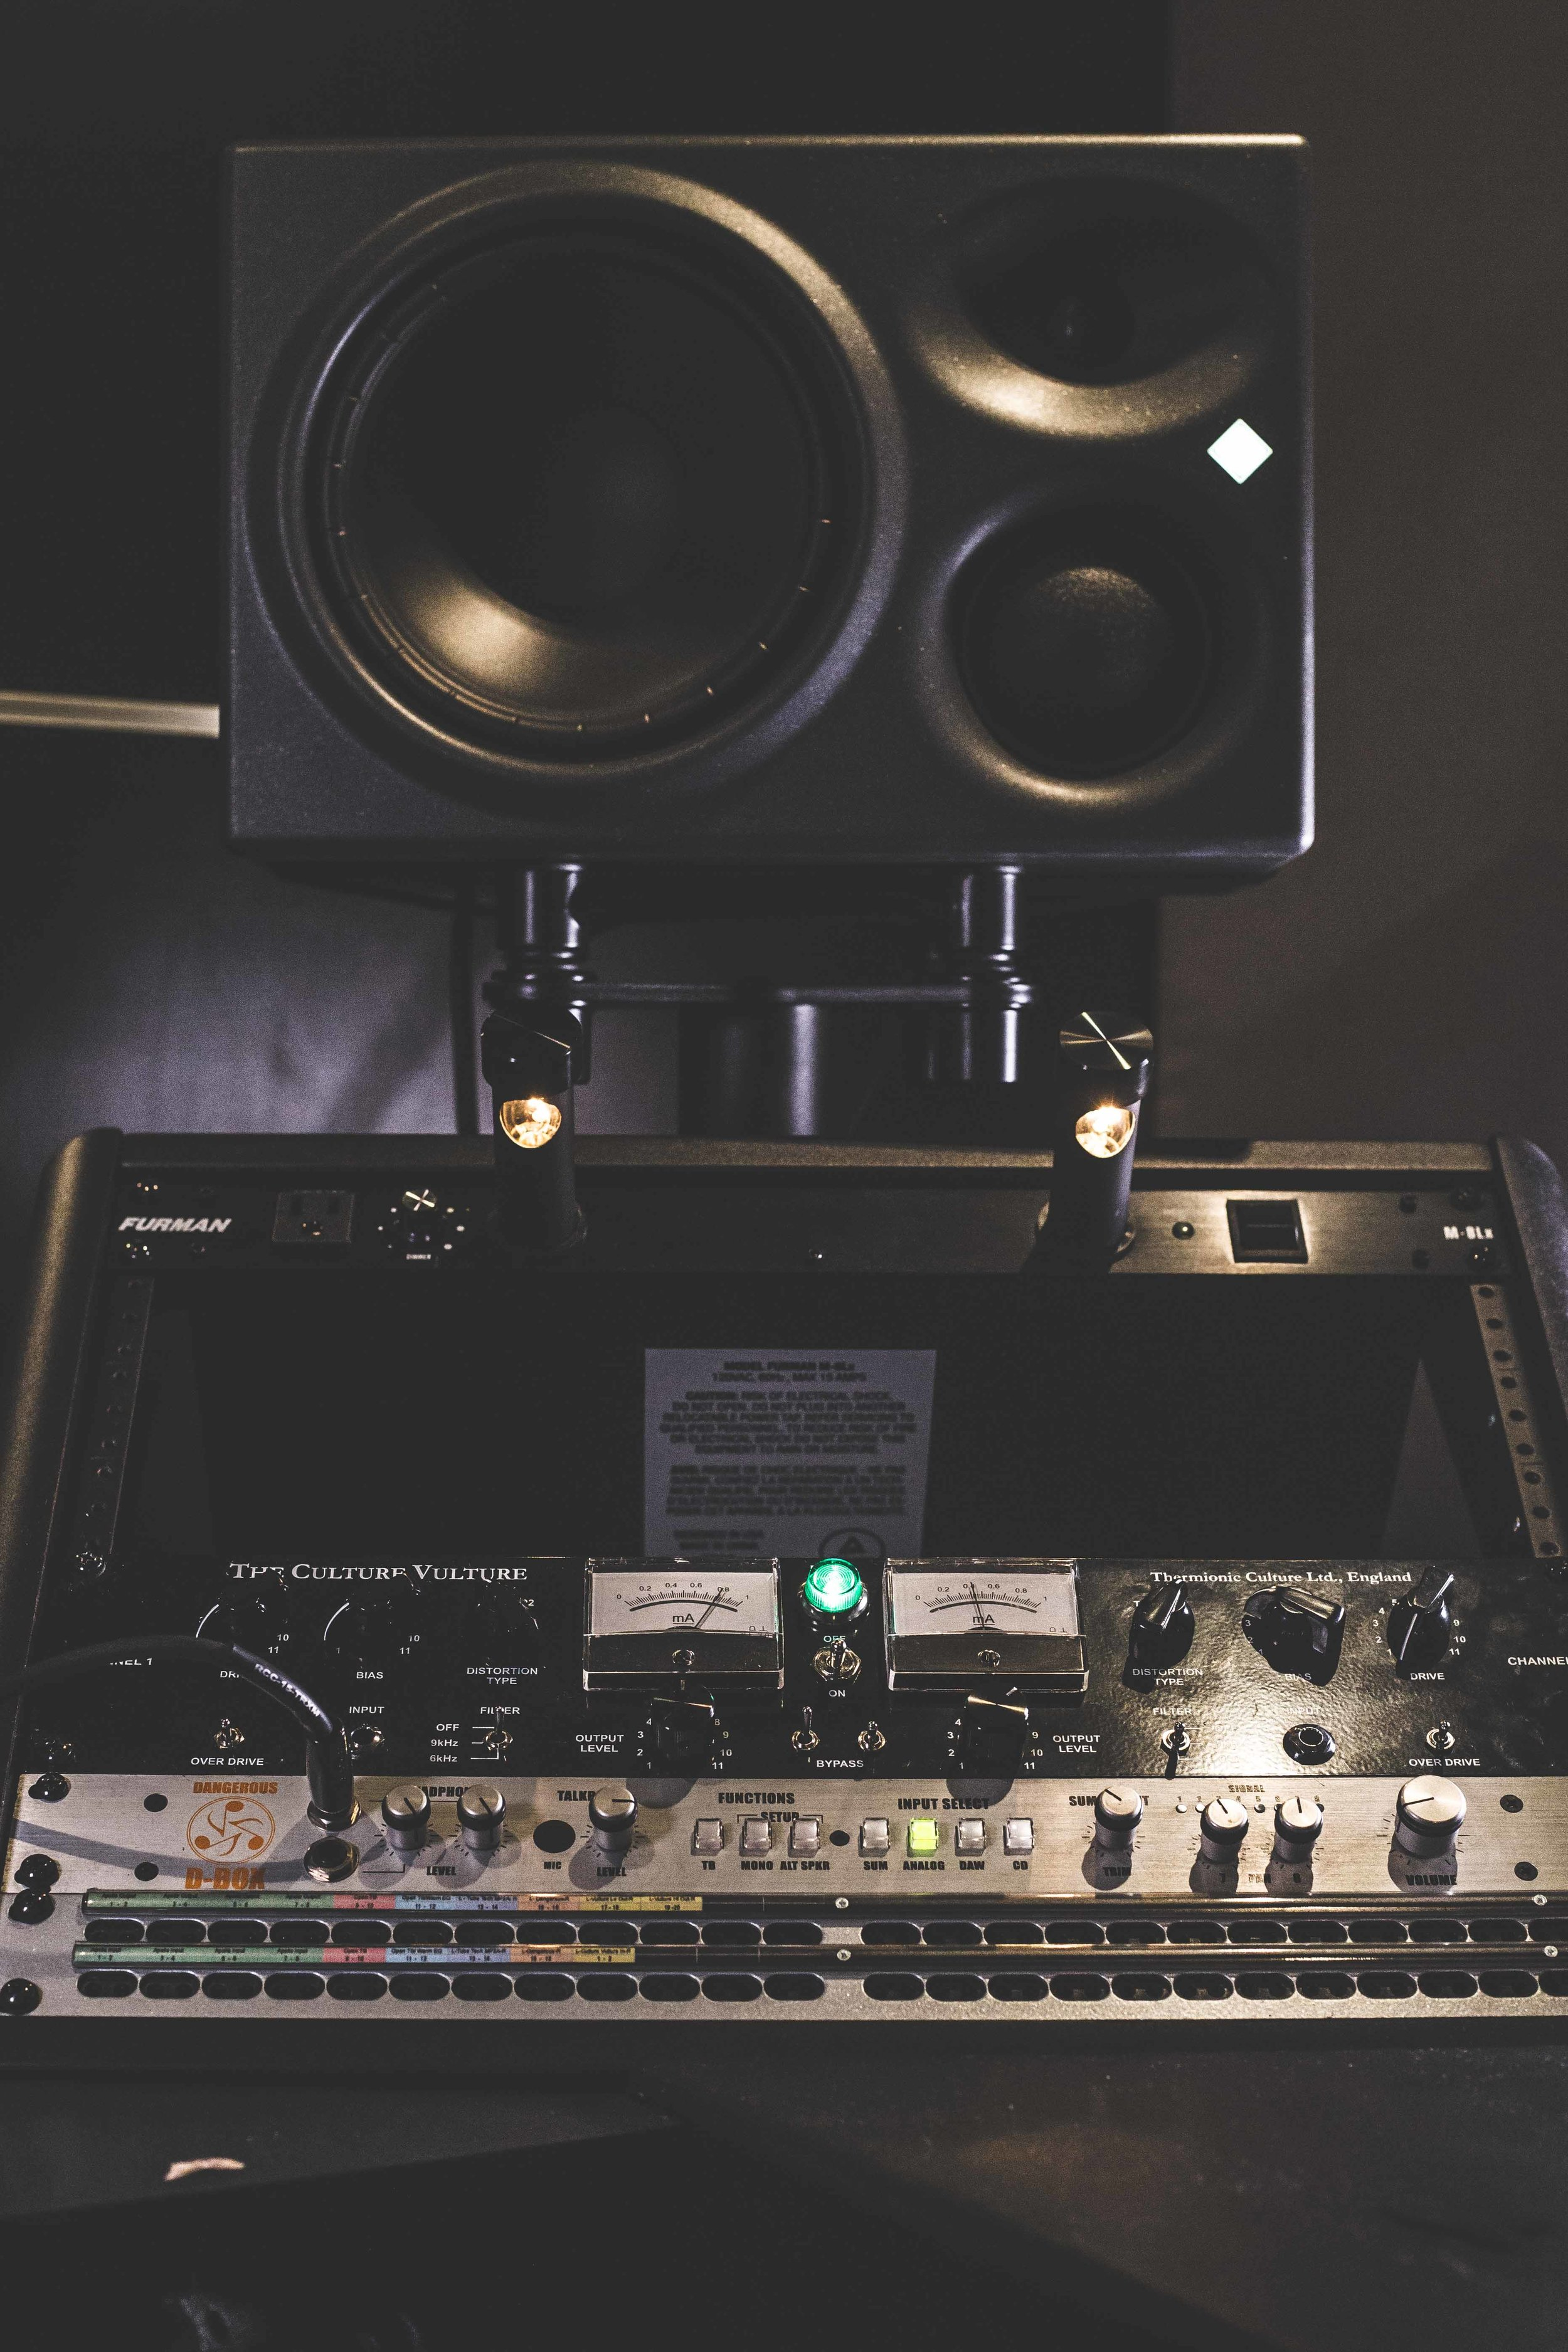 Neumann KH 310 Active Studio Monitors